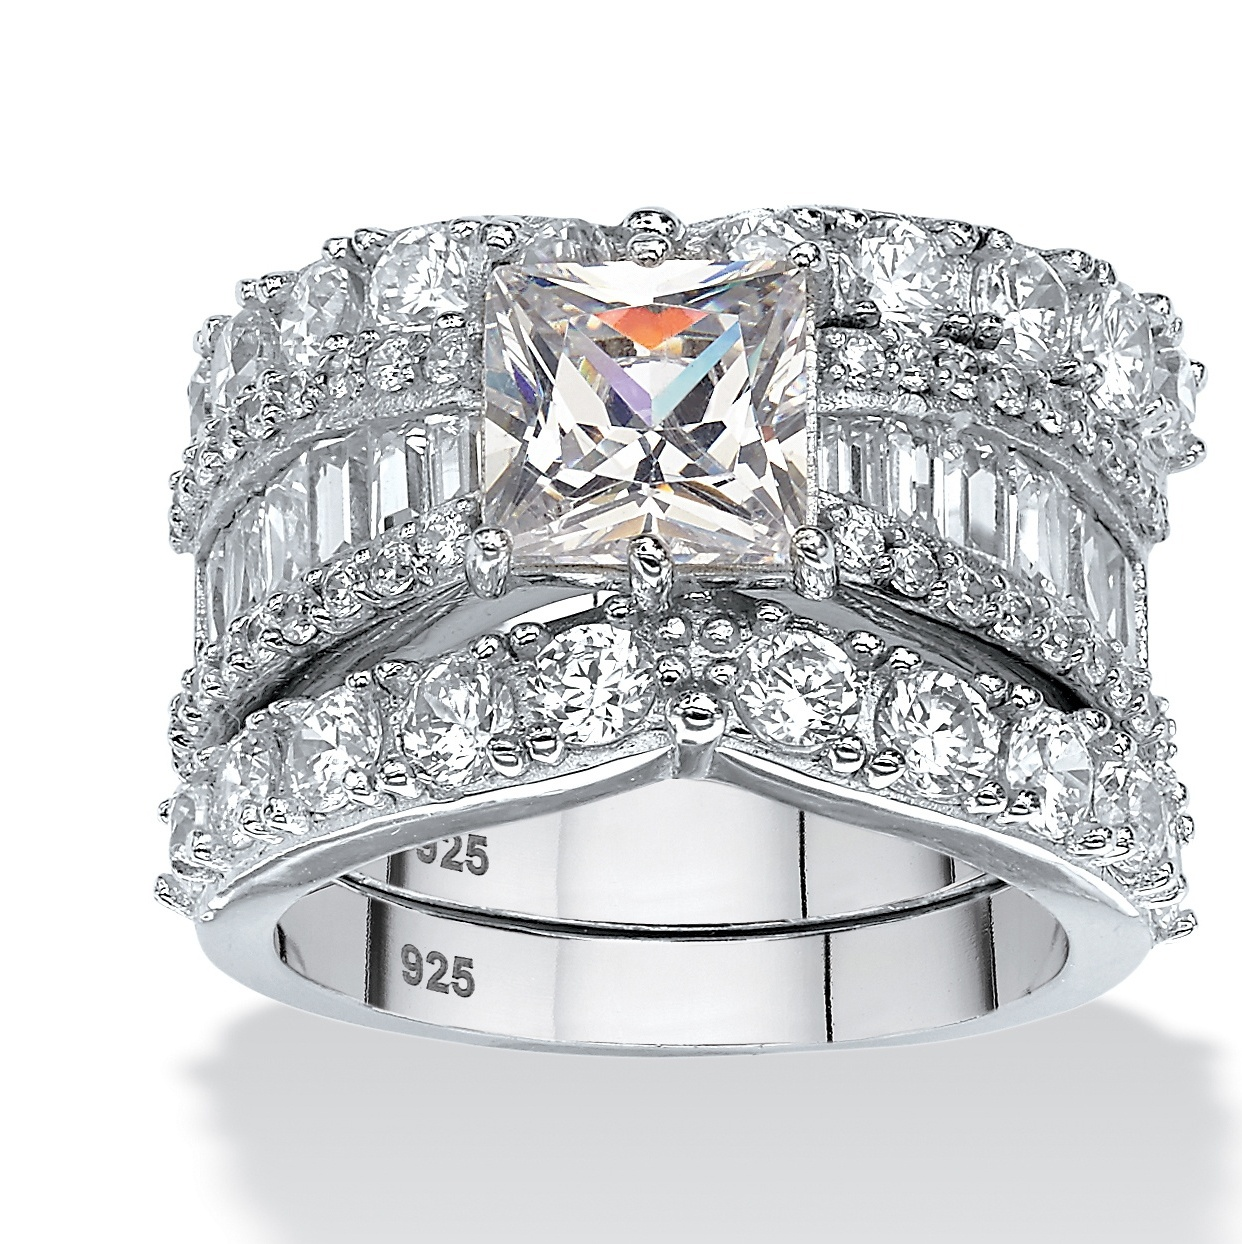 6.18 TCW Princess-Cut Cubic Zirconia Three-Piece Bridal Ring Set in Platinum over Sterling Silver by PalmBeach Jewelry